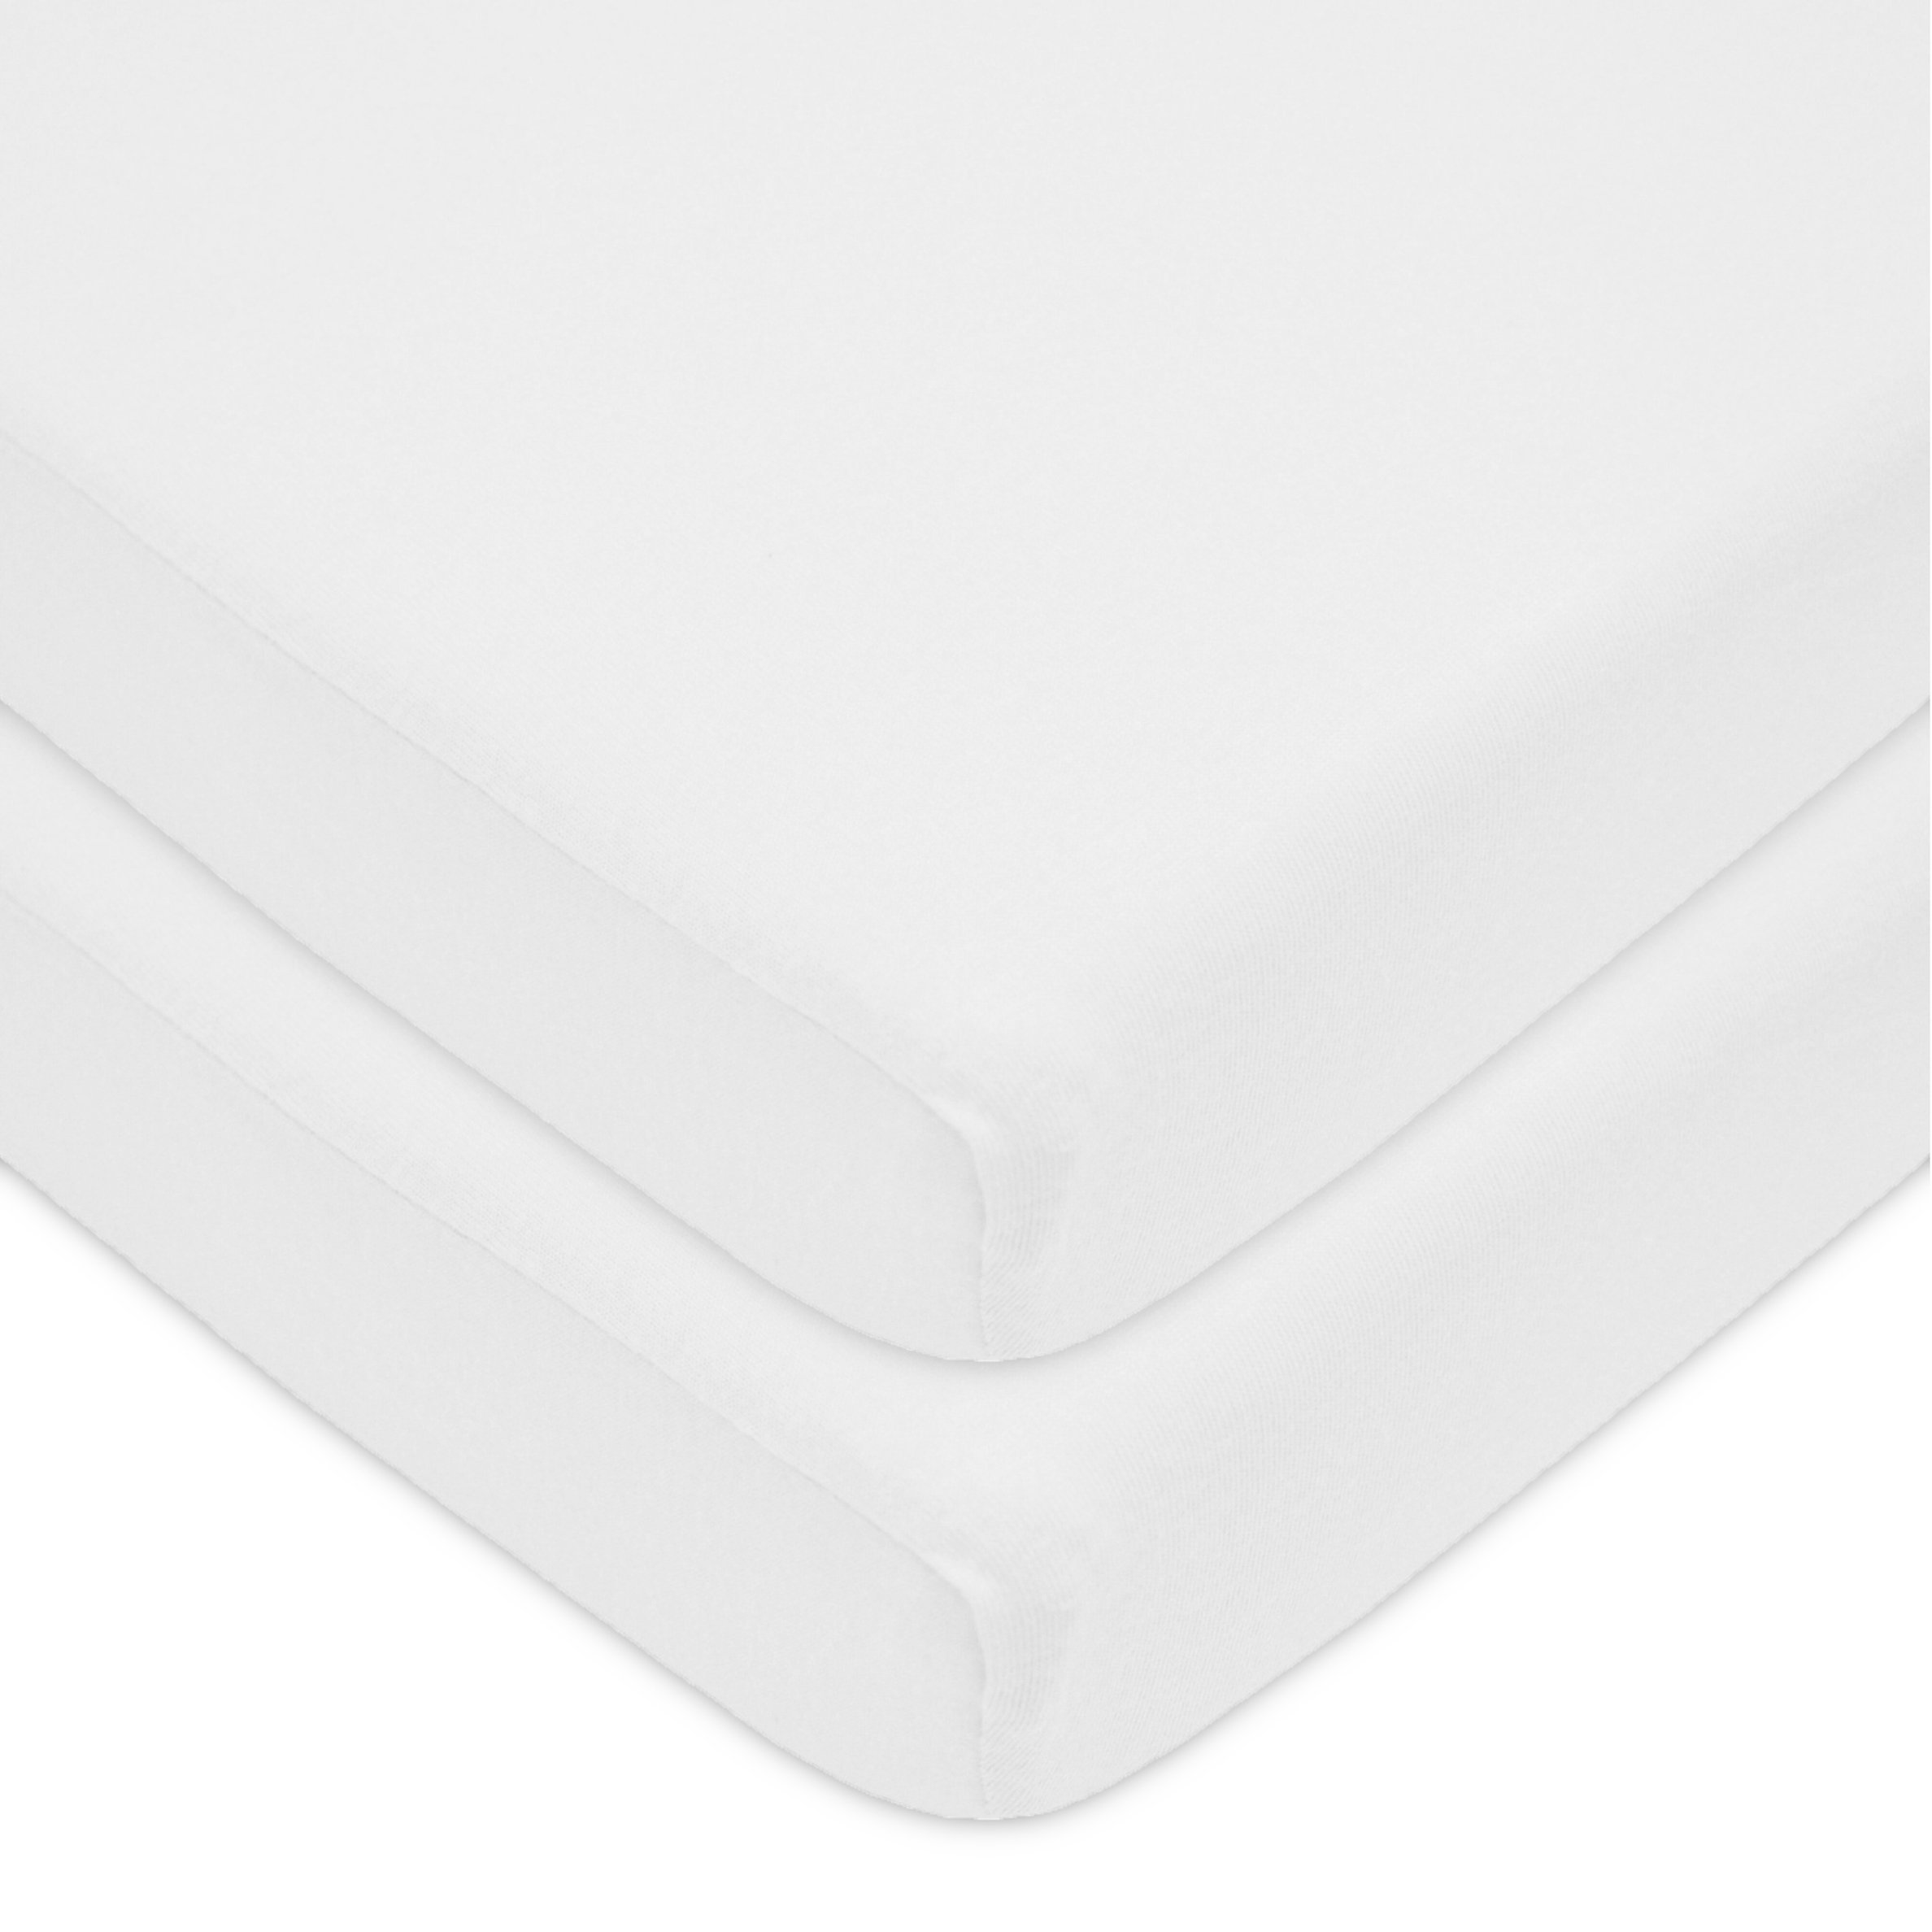 American Baby Company 100% Natural Cotton Value Jersey Knit Fitted Portable/Mini-Crib Sheet, Can be used as Medical Sheets for Neonatal Cribette, White, Soft Breathable, for Boys and Girls, Pack of 2